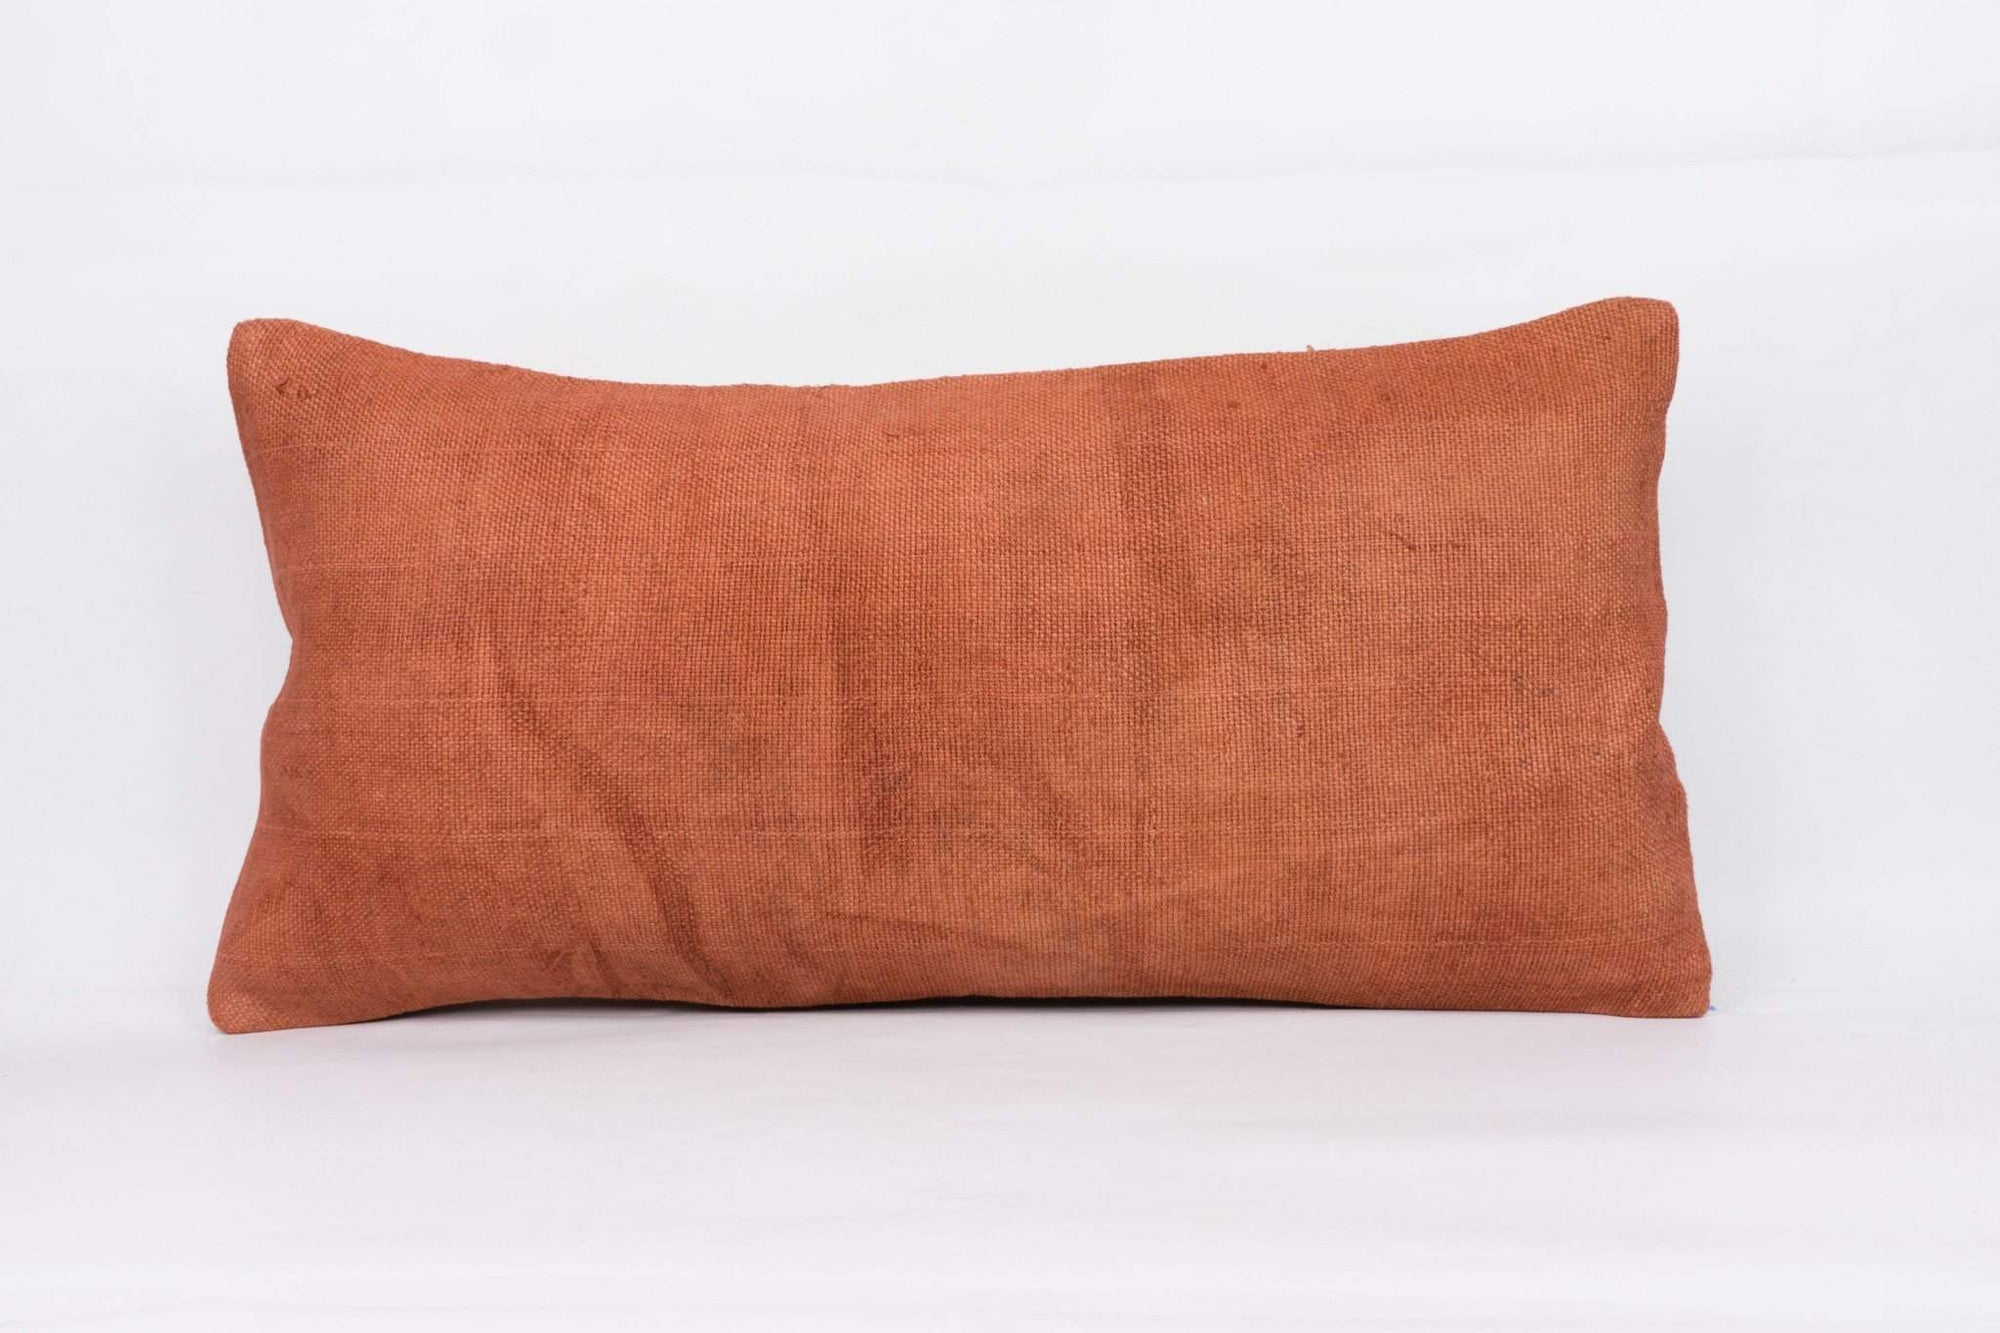 Plain Brown Kilim Pillow Cover 12x24 4174